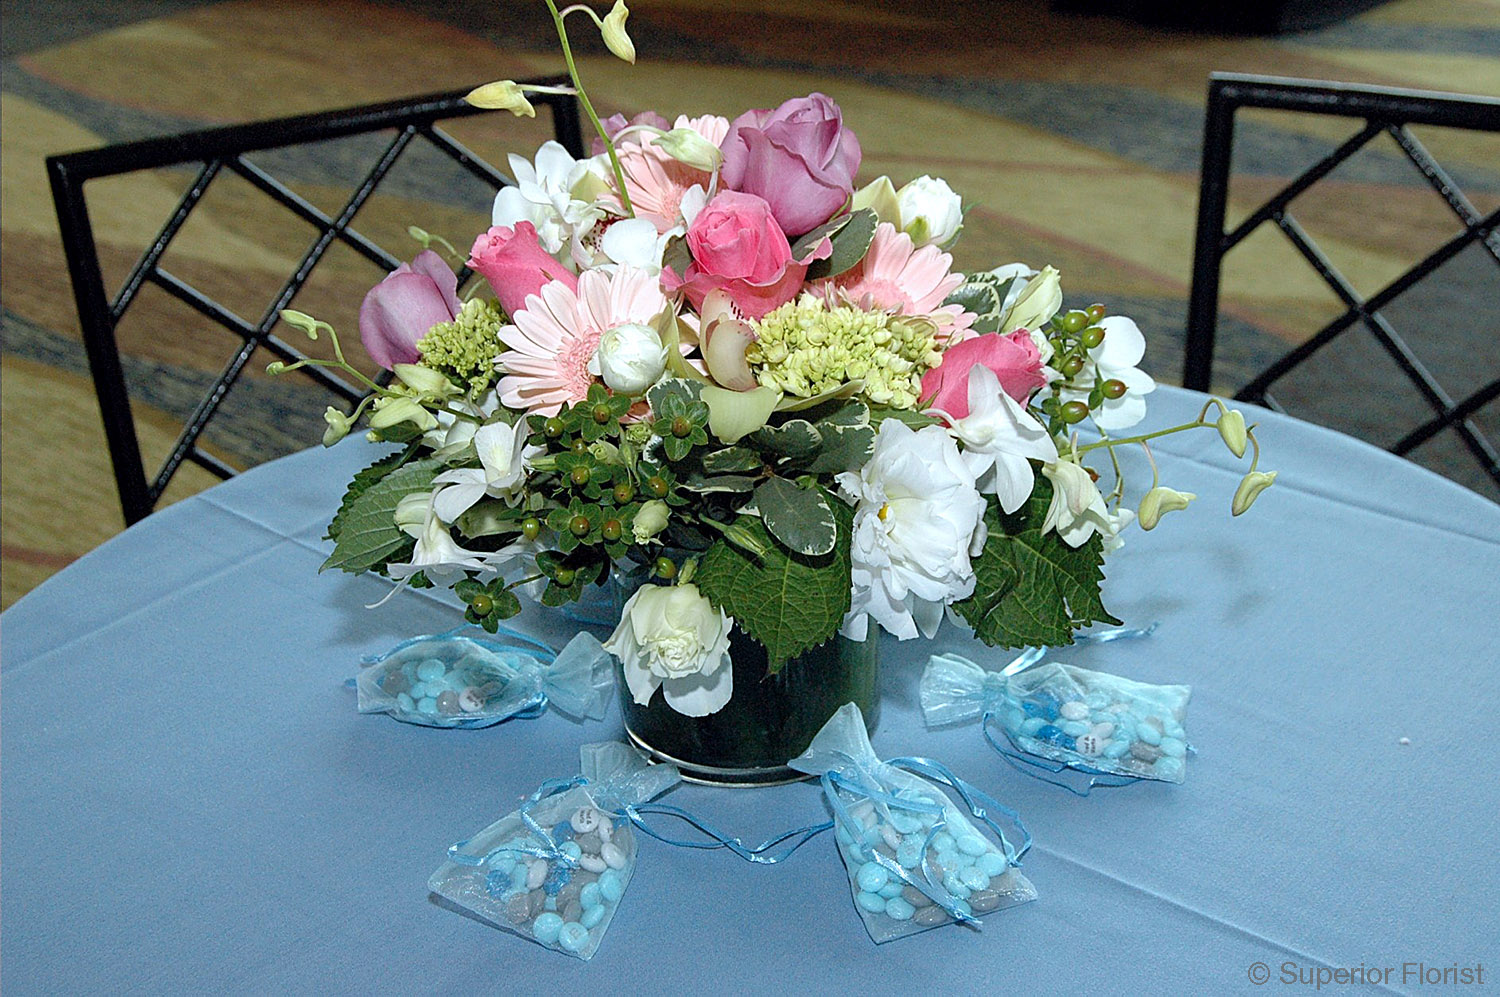 Superior Florist – Centerpieces:  Arrangement of spring colored flowers in a short, glass vase surrounded by small bags of take-home candies for guests.